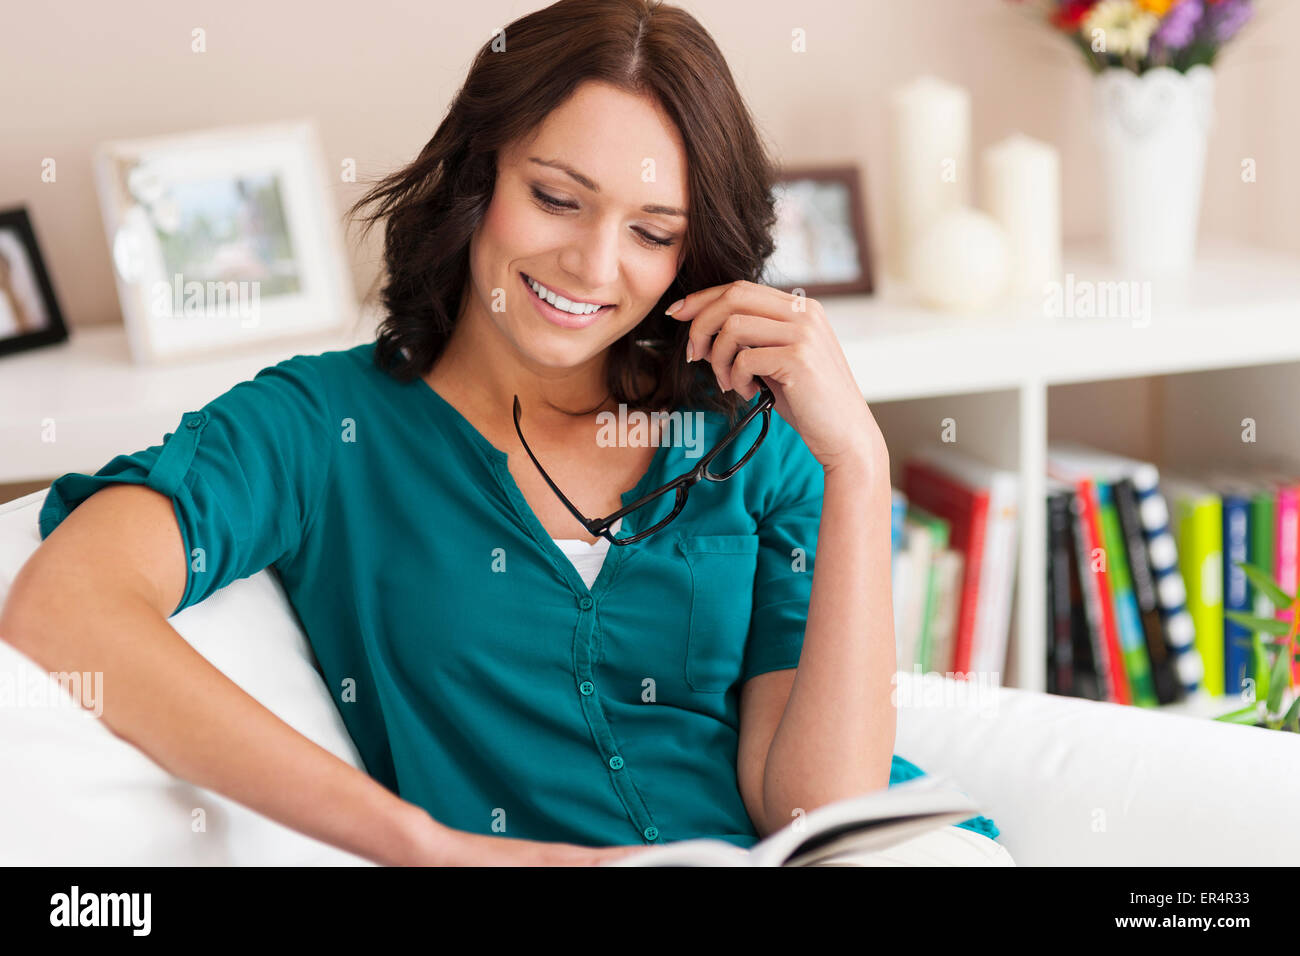 This book is amazing, really! Debica, Poland - Stock Image